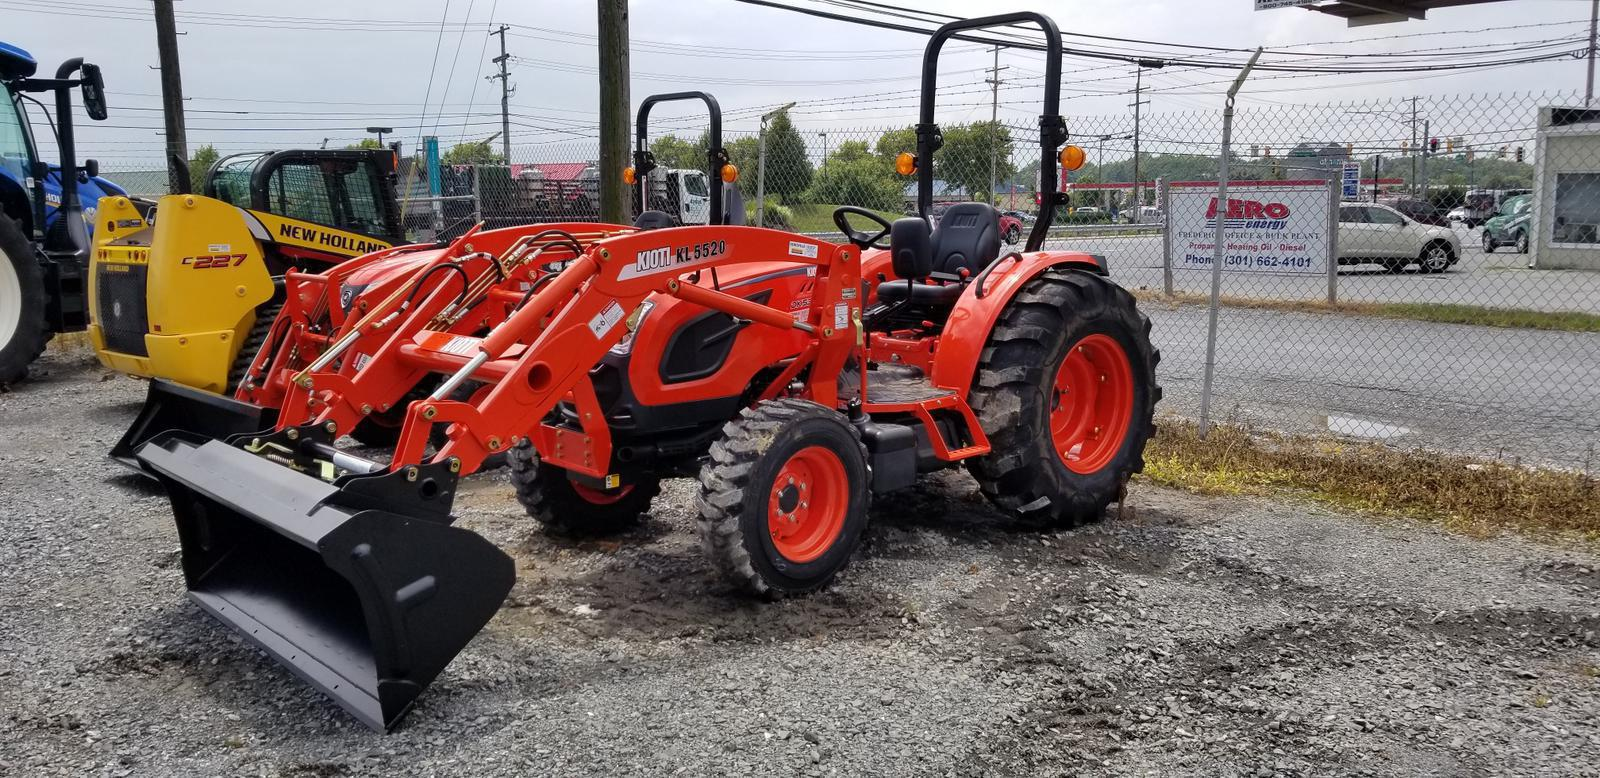 Inventory Ceresville New Holland, Inc  Frederick, MD (800